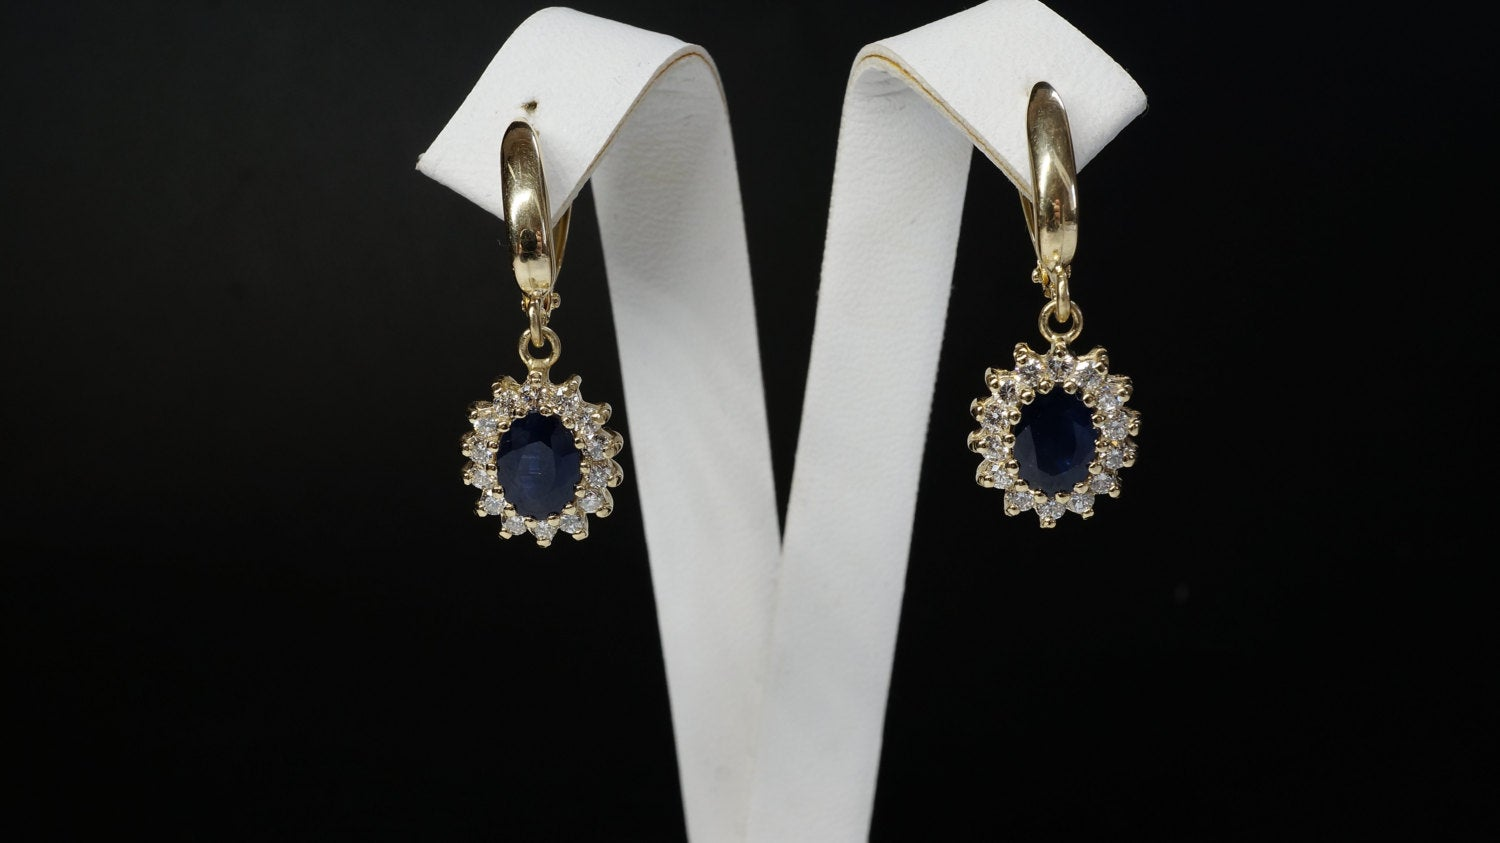 2 carat Blue Sapphire Earrings-Diamond Earrings with Sapphire-Sapphire Drop Earrings-Cluster earrings-Vintage earrings